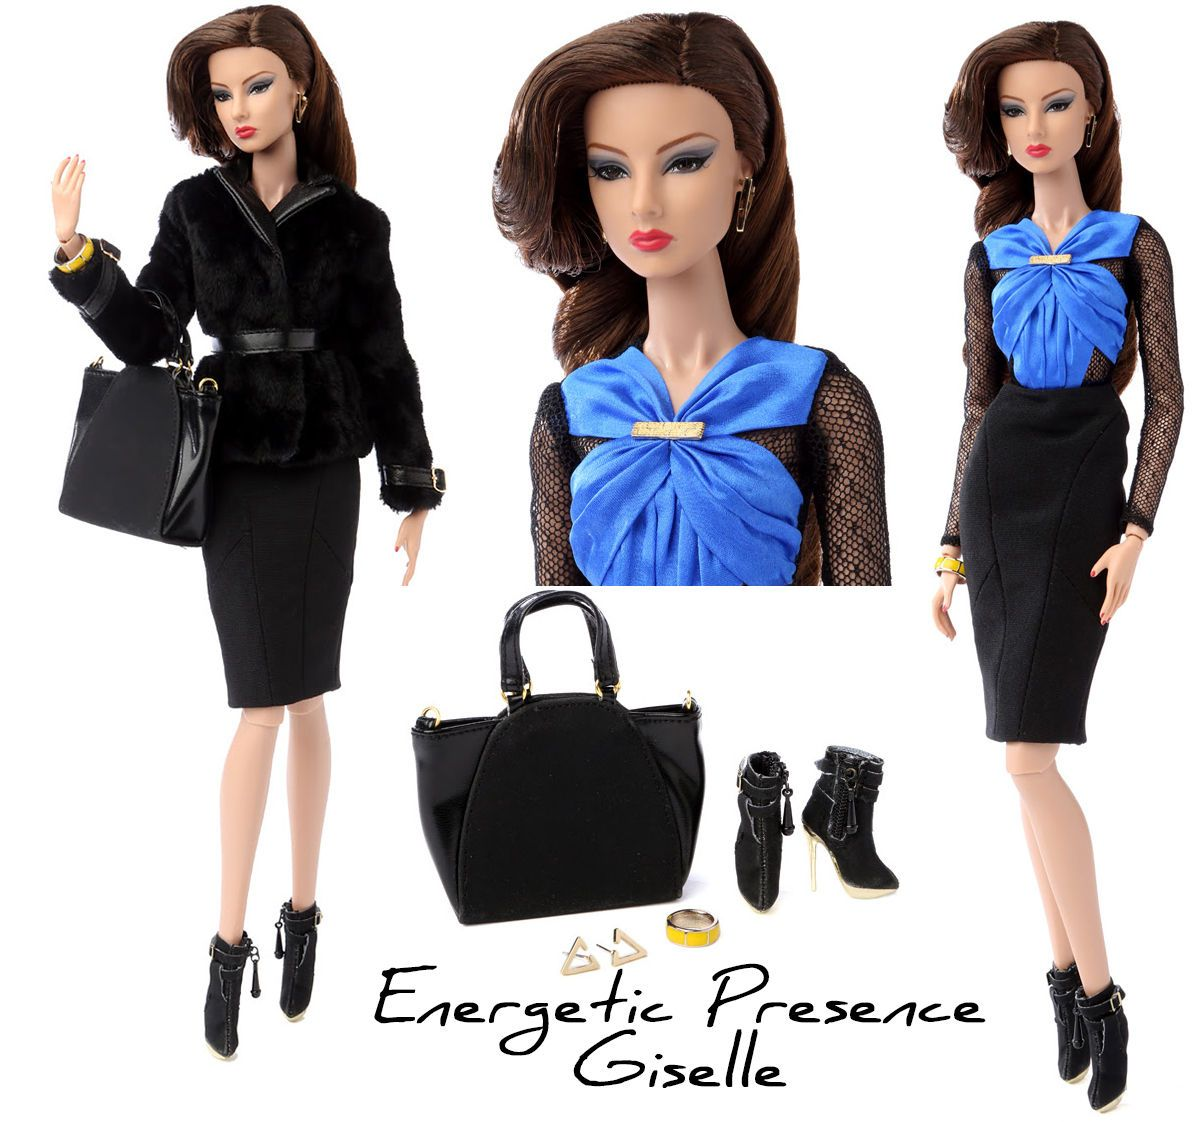 fashion royalty nu face energetic presence giselle integrity toys fashion royalty nu face energetic presence giselle integrity toys 82054 mint